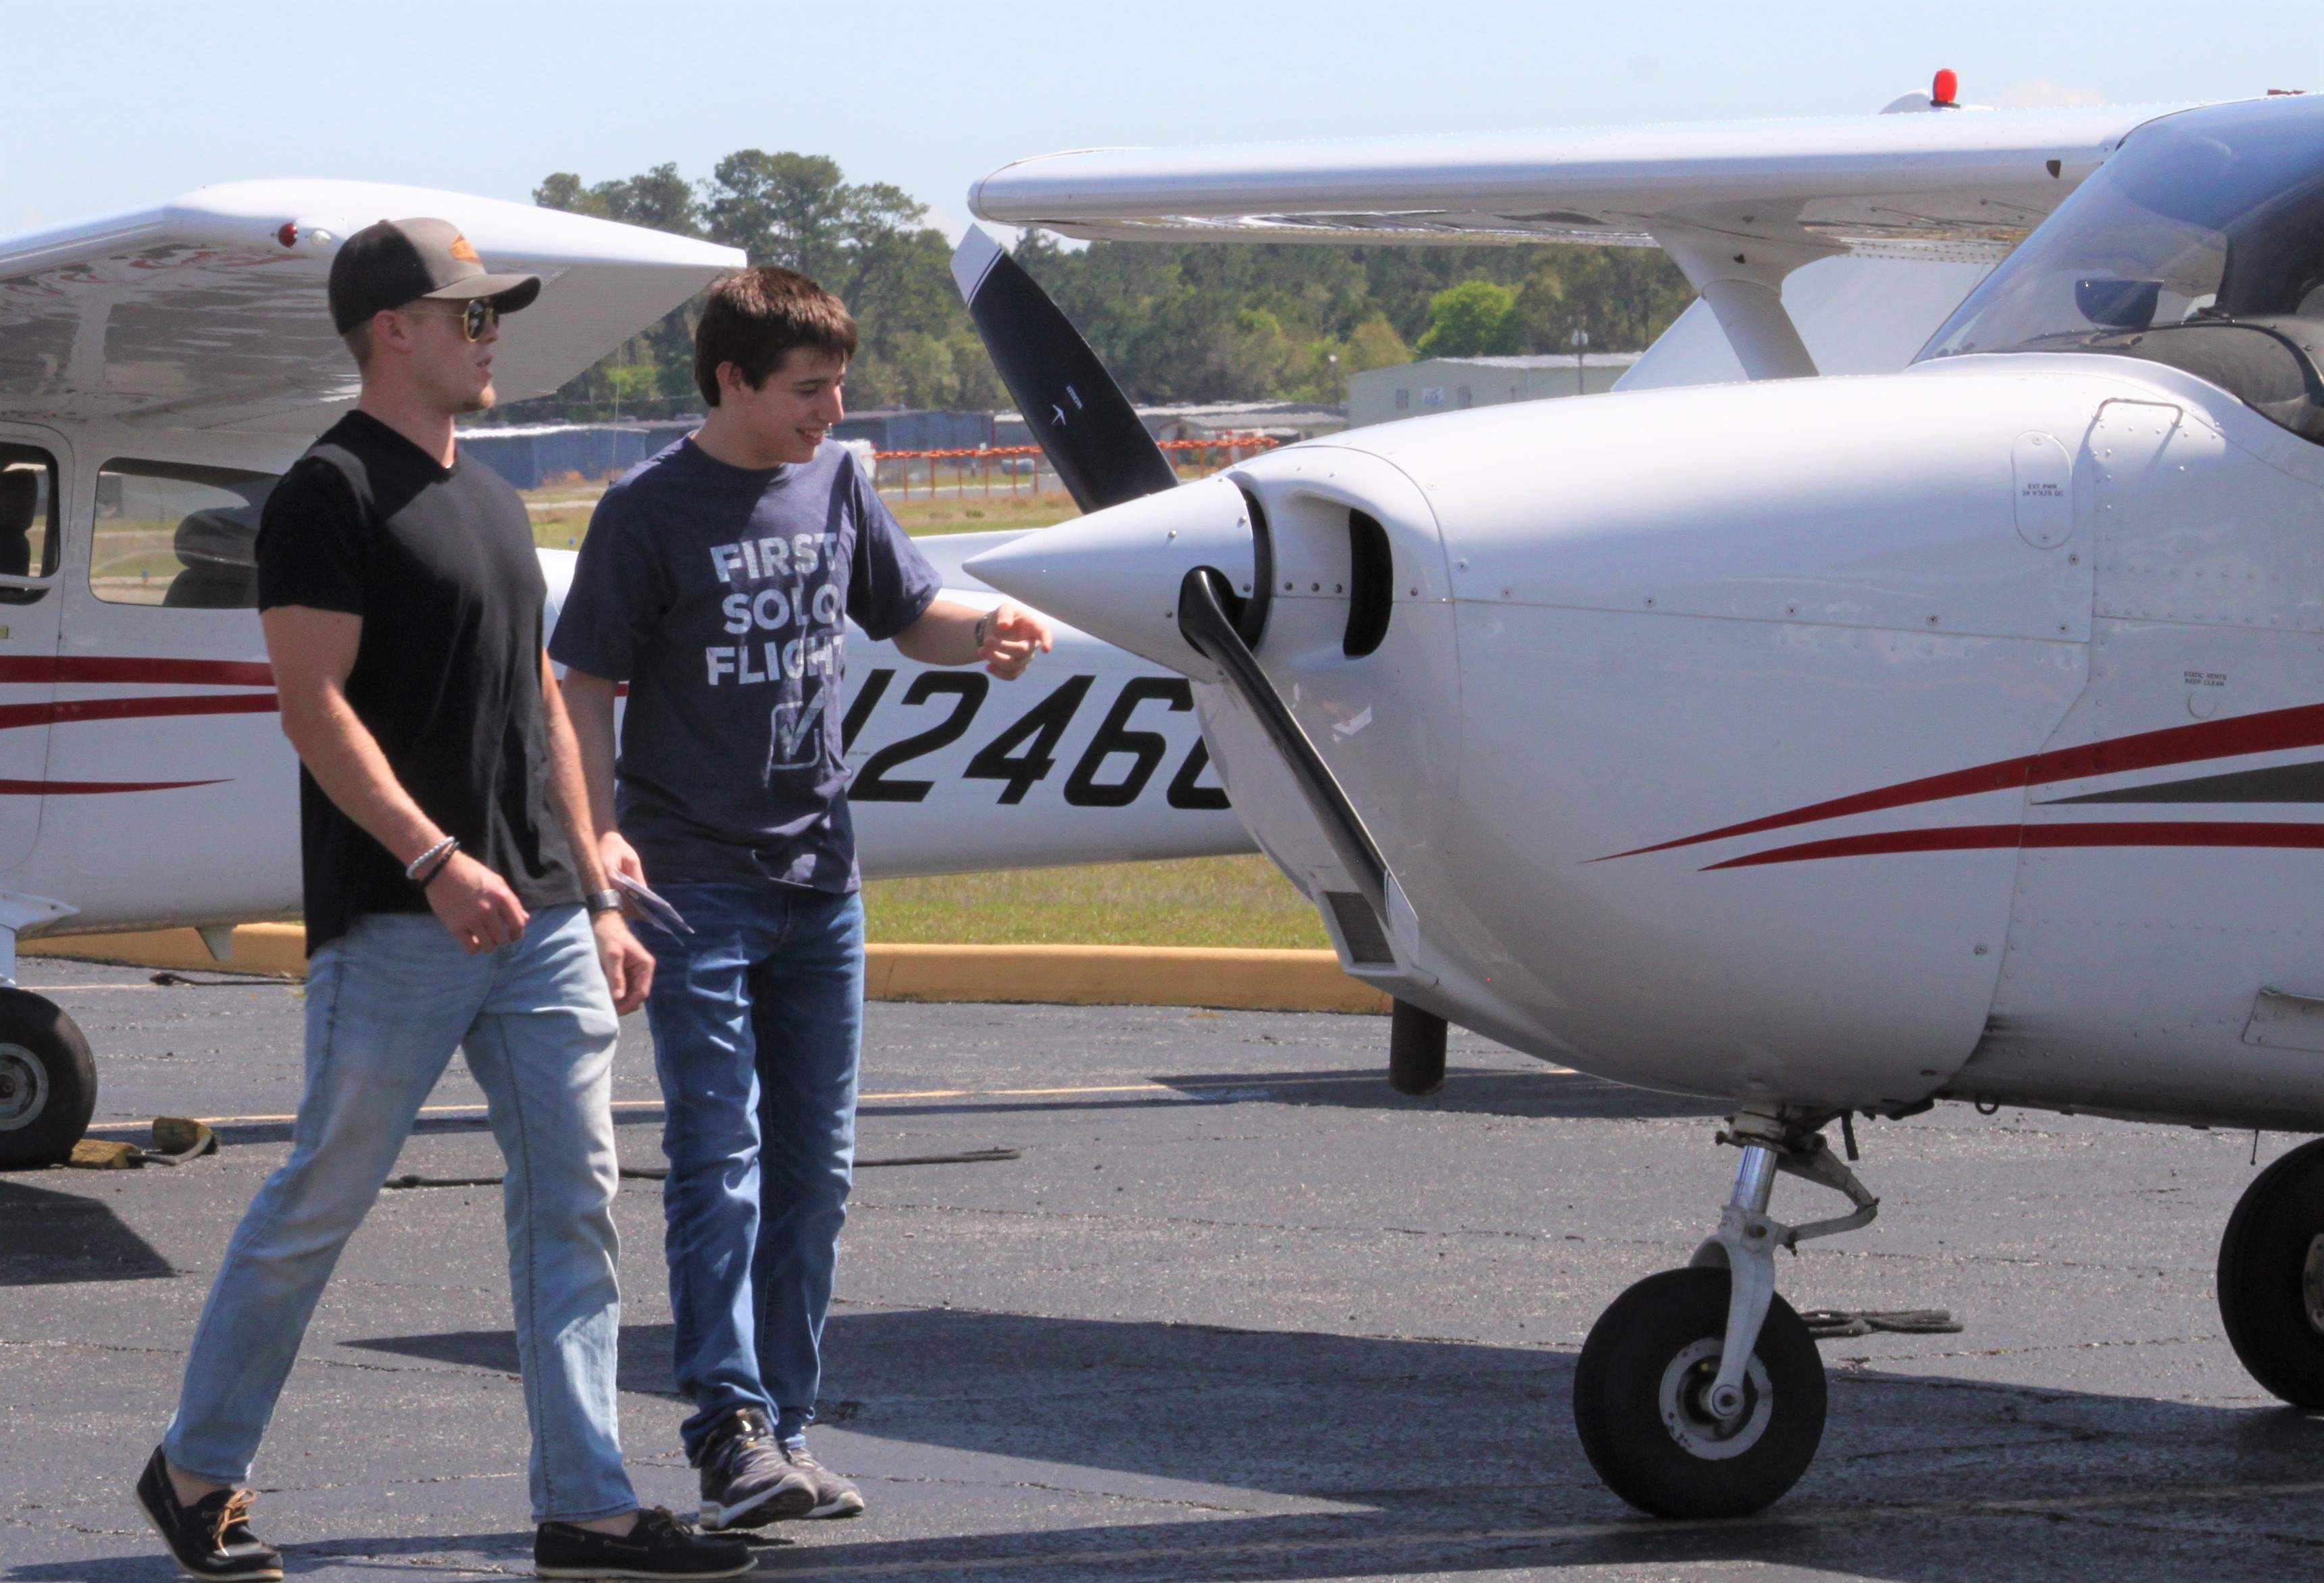 16-year-old pilots his first solo flight from Brooksville